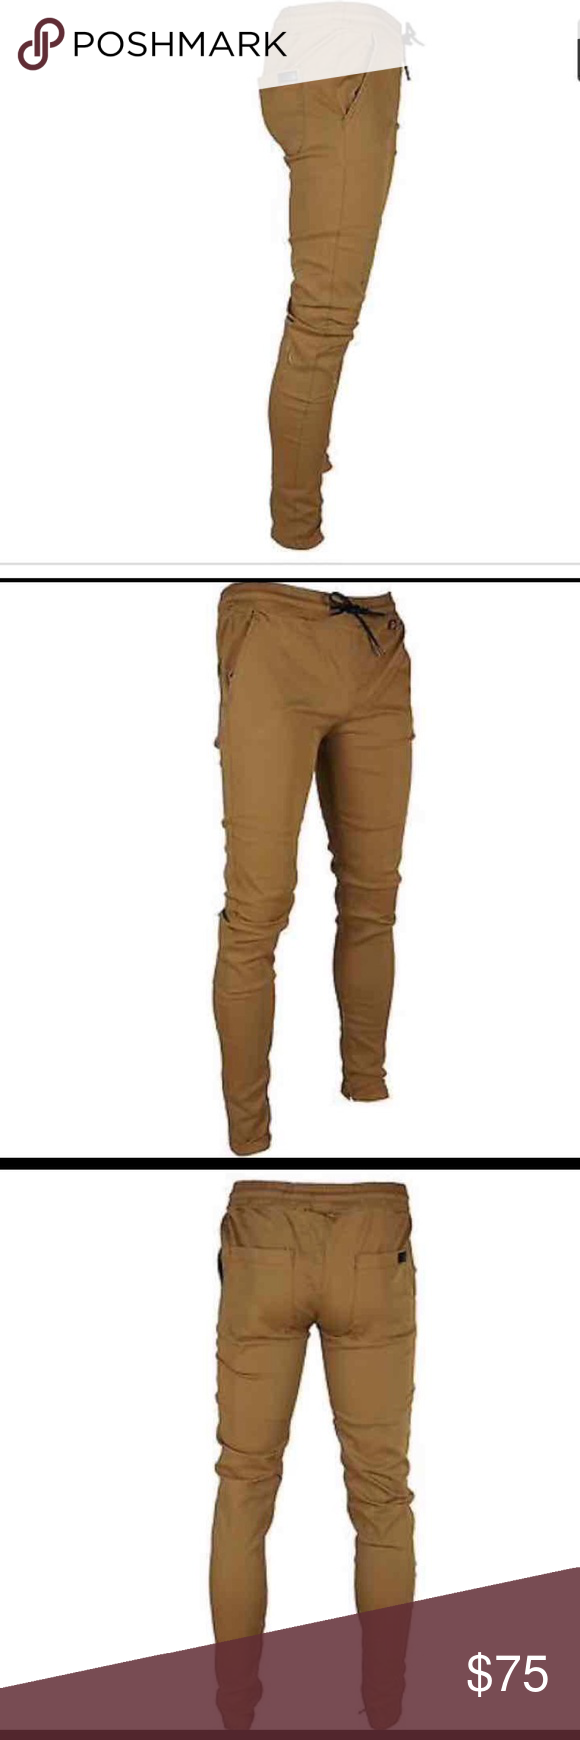 2d2836d3ebb Men s camel color joggers KDNK men s tapered ankle zipper slim fit jogger  pants 30-38 I bought them and they didn t fit me and I paid  75 for them  Jeans ...